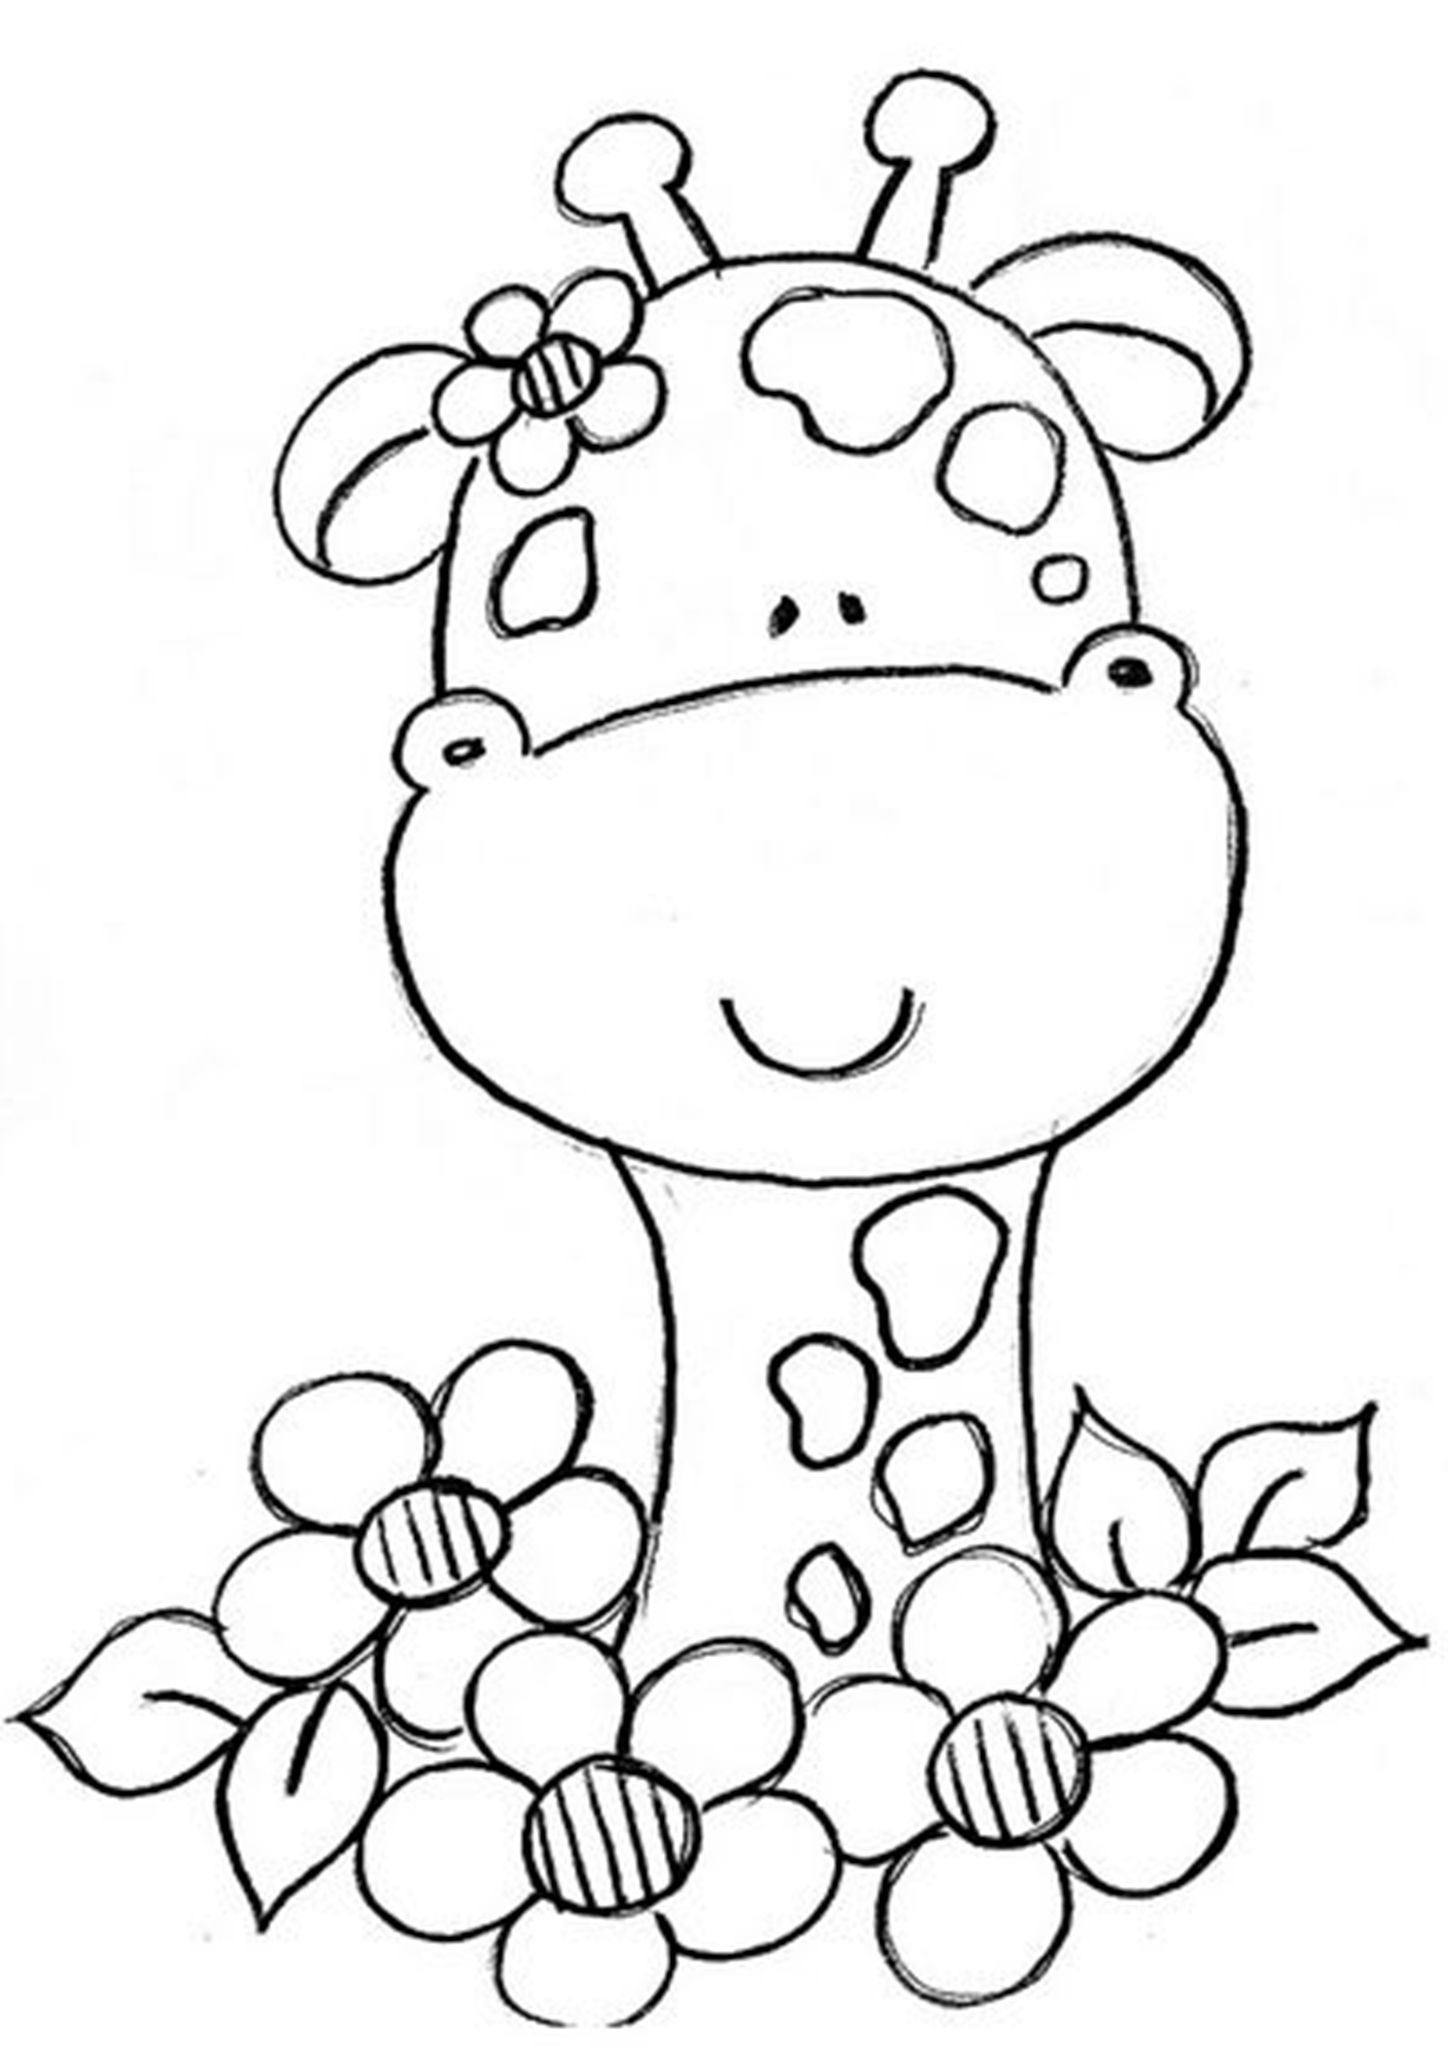 Free Easy To Print Giraffe Coloring Pages Giraffe Coloring Pages Coloring Pages Embroidery Patterns